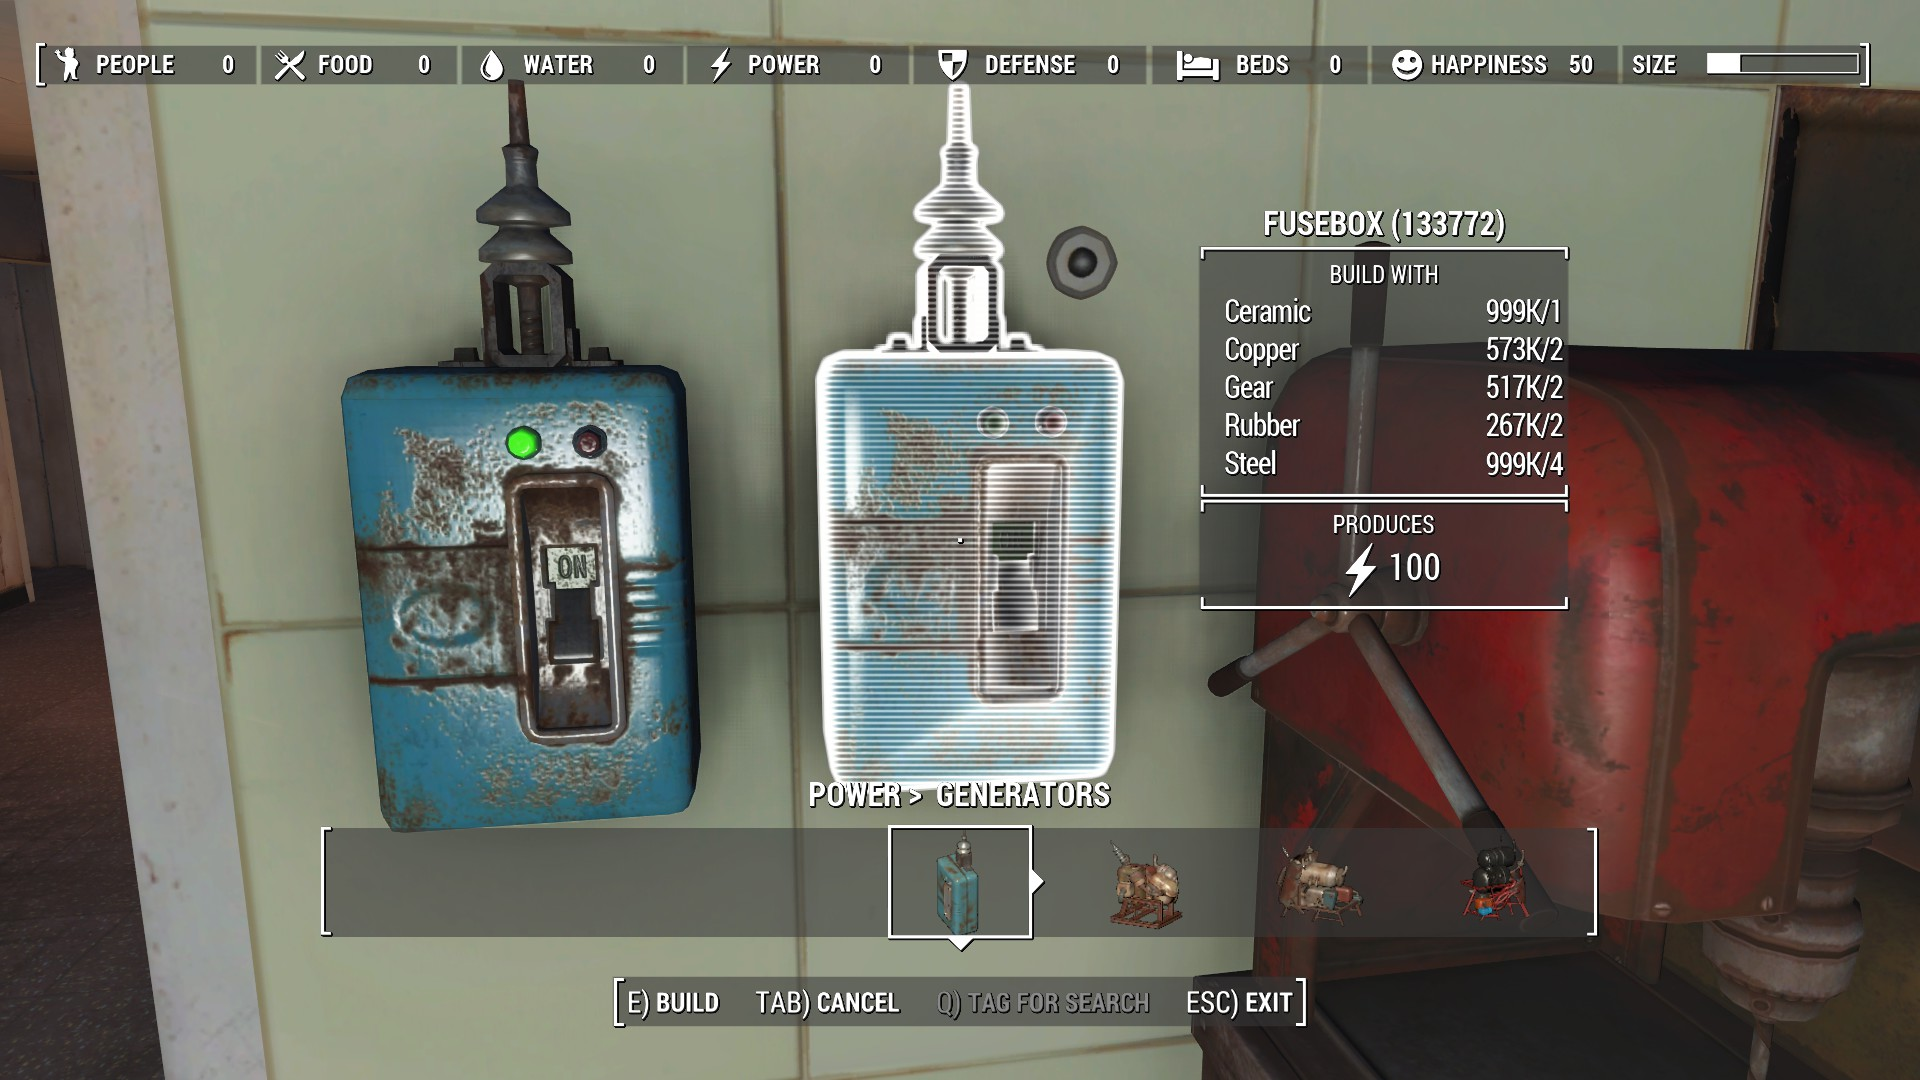 3429 0 1448747560 fallout 4 fuse box id fallout 3 xbox 360 \u2022 wiring diagram database fallout 4 fuse box lid at bakdesigns.co